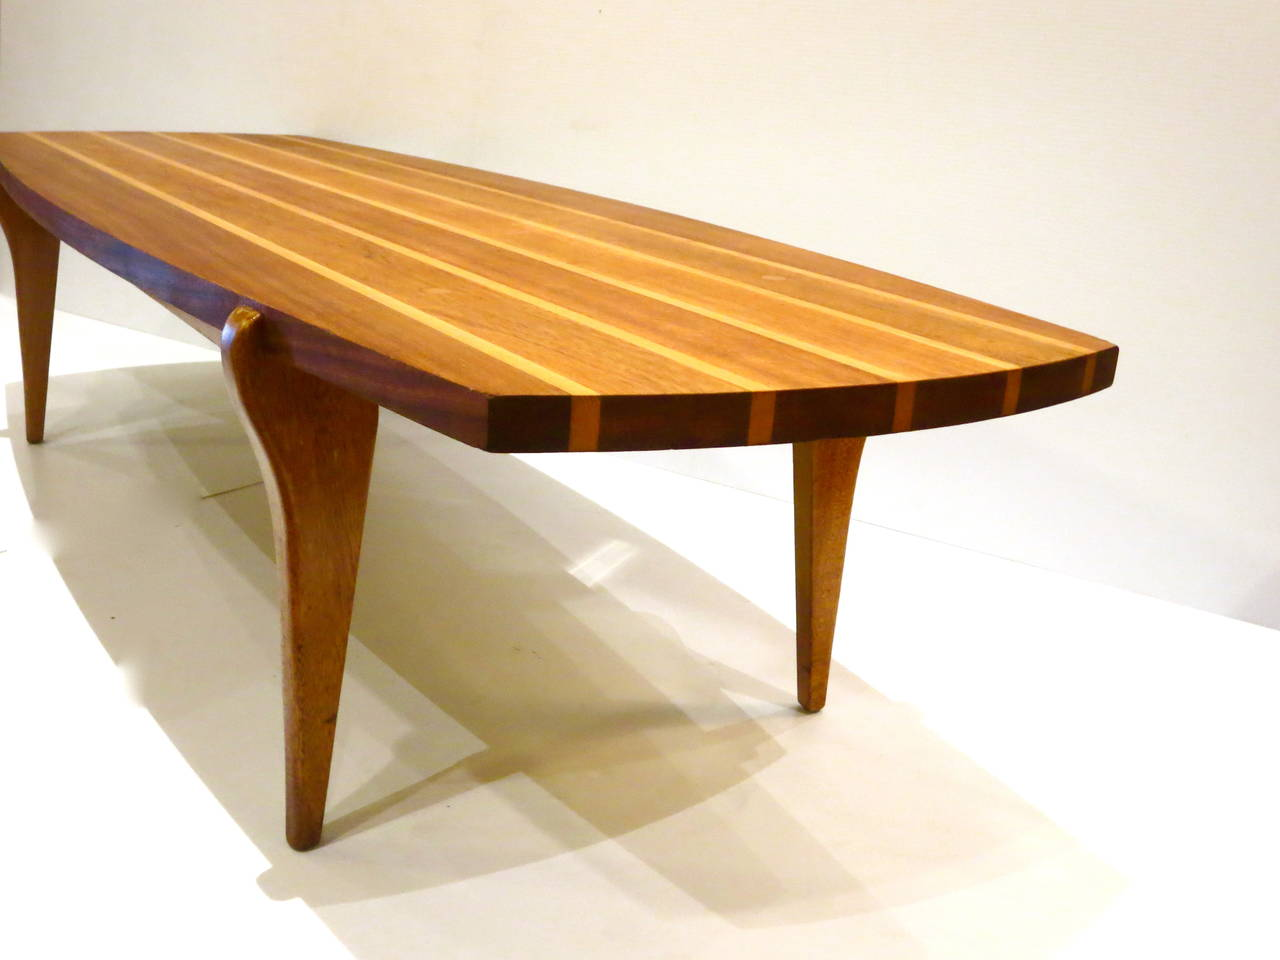 Surfboard Tables For Sale Mid Century Modern Rare Surfboard Coffee Table Brown